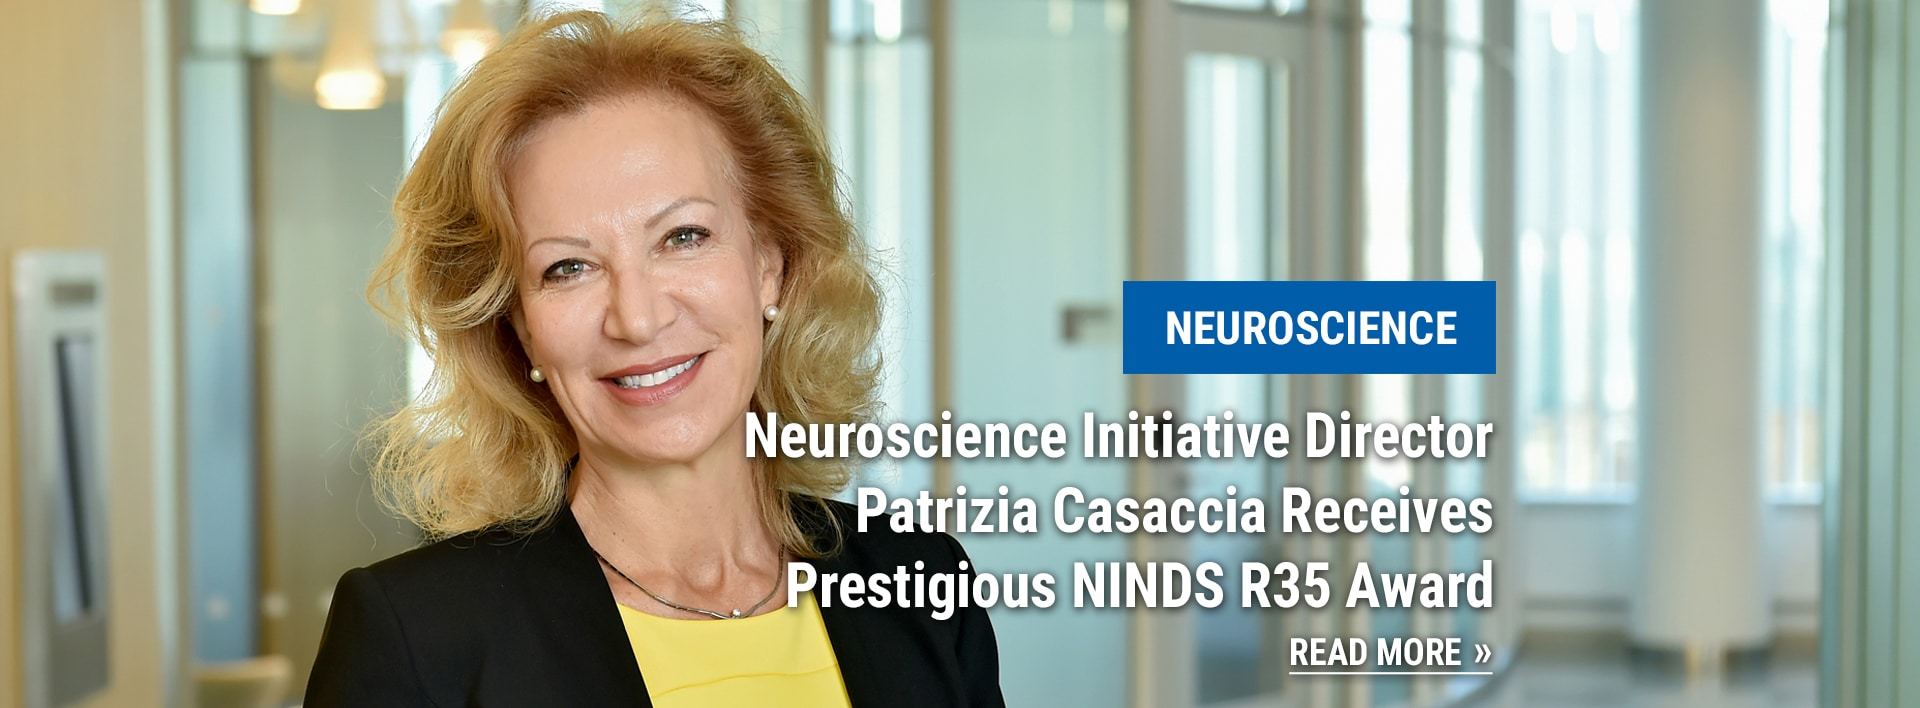 Structural Biology news: Neuroscience Initiative Director Patrizia Casaccia Receives Prestigious NINDS R35 Award